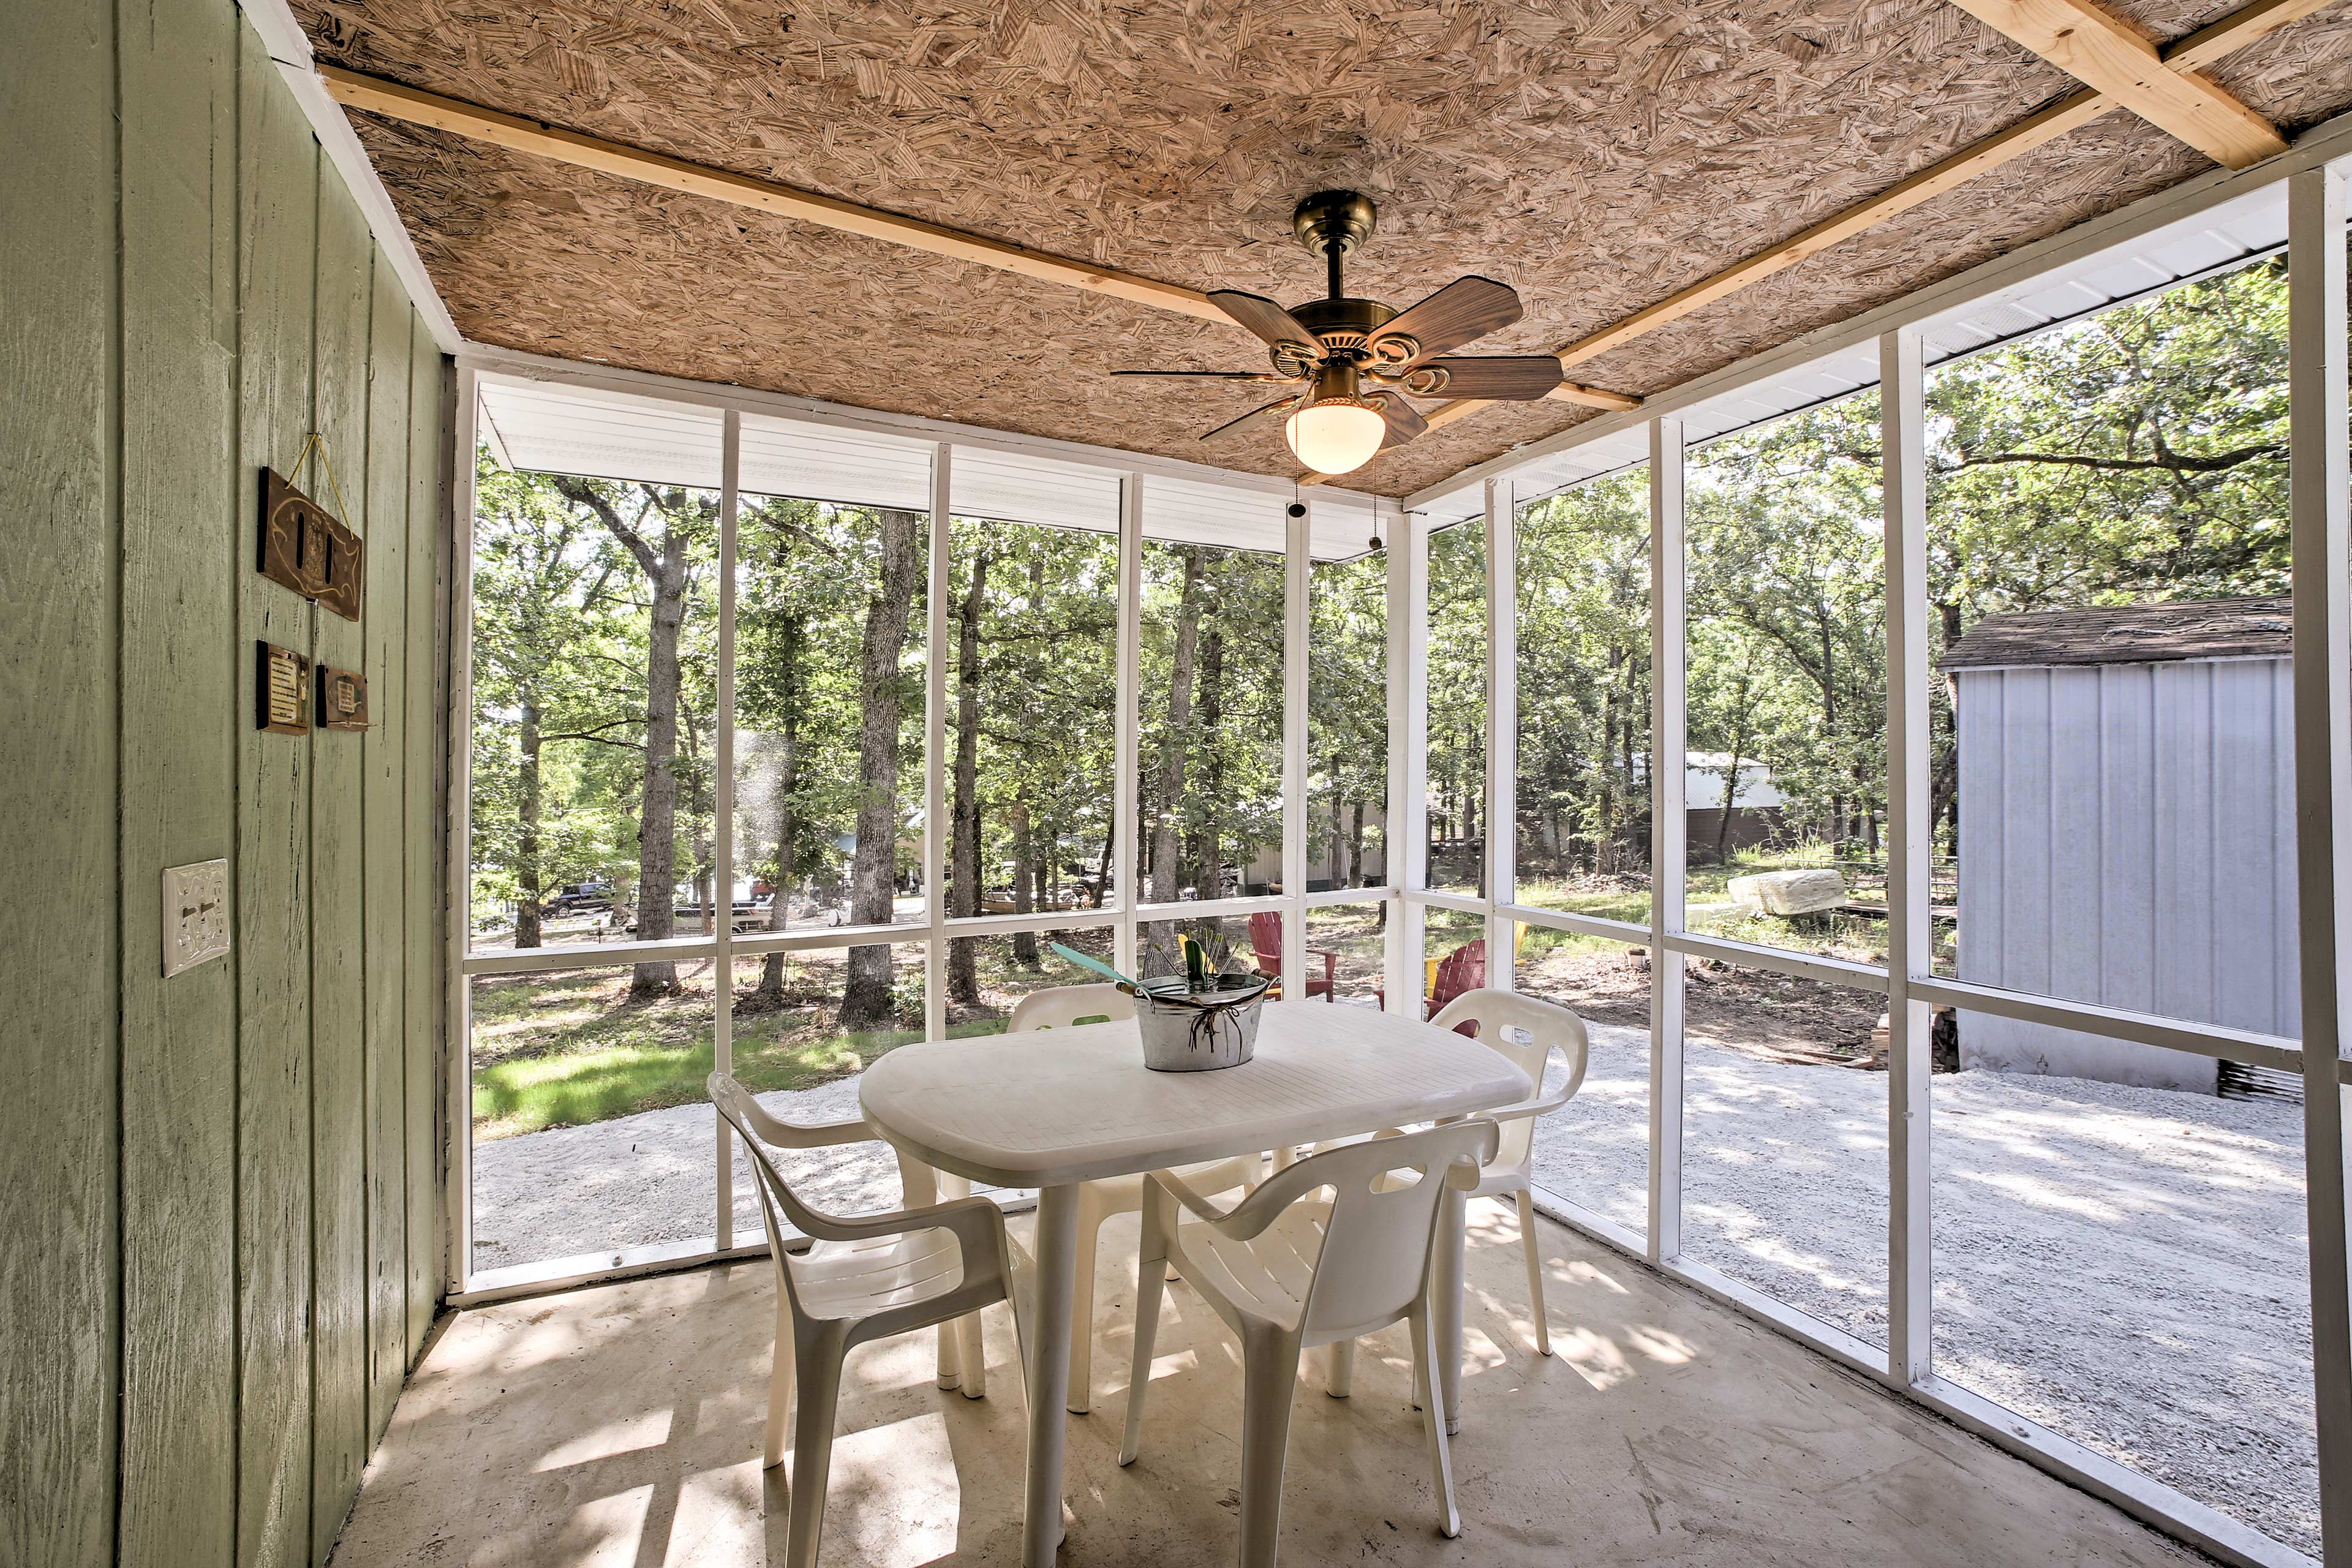 Escape the sun but remain outdoors in the screened-in porch.